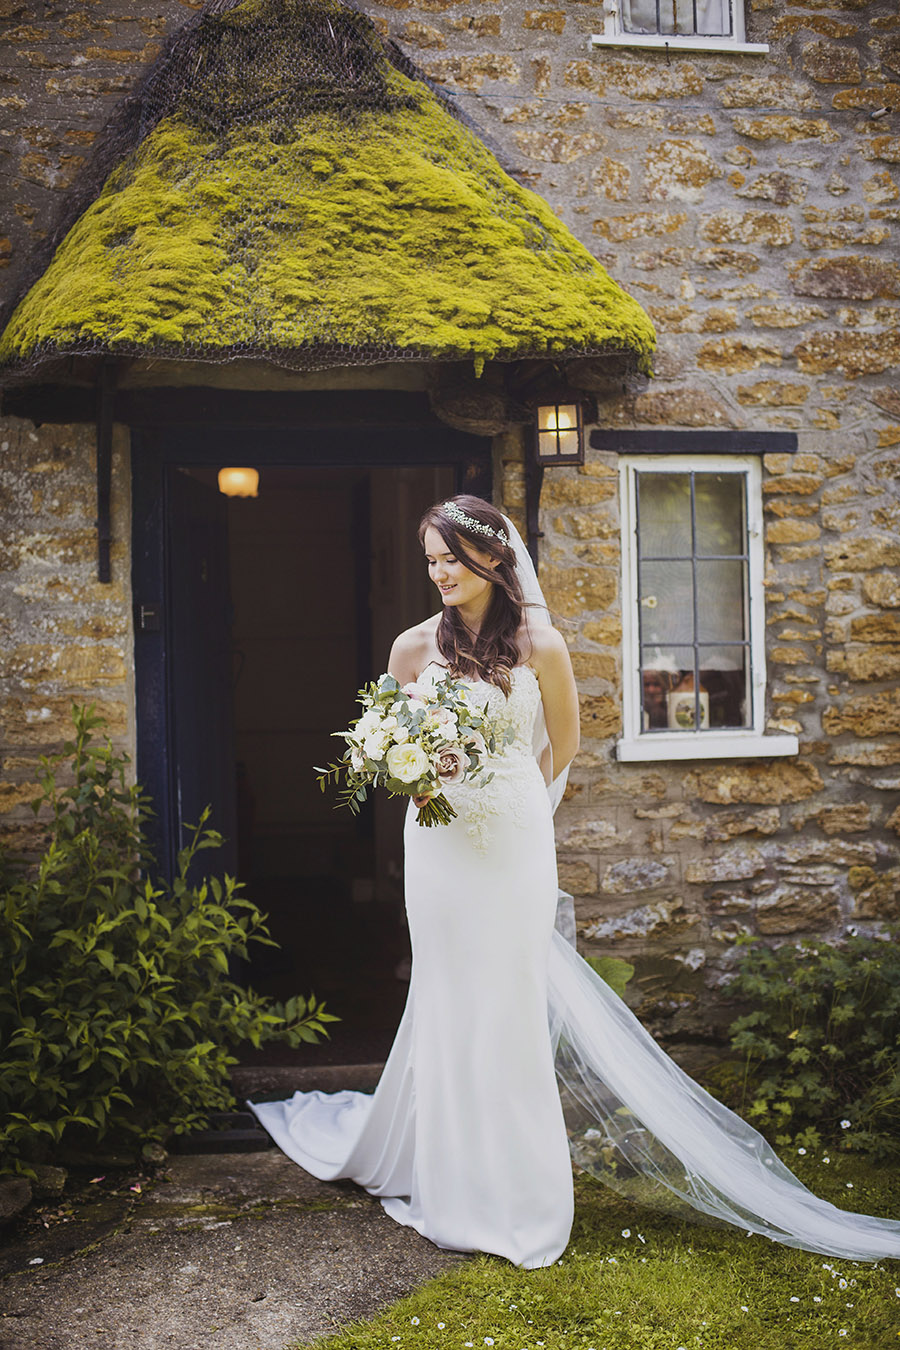 Relaxed outdoor wedding at Cott Farm Barn with images by Heather Birnie Photography on the English Wedding Blog (7)